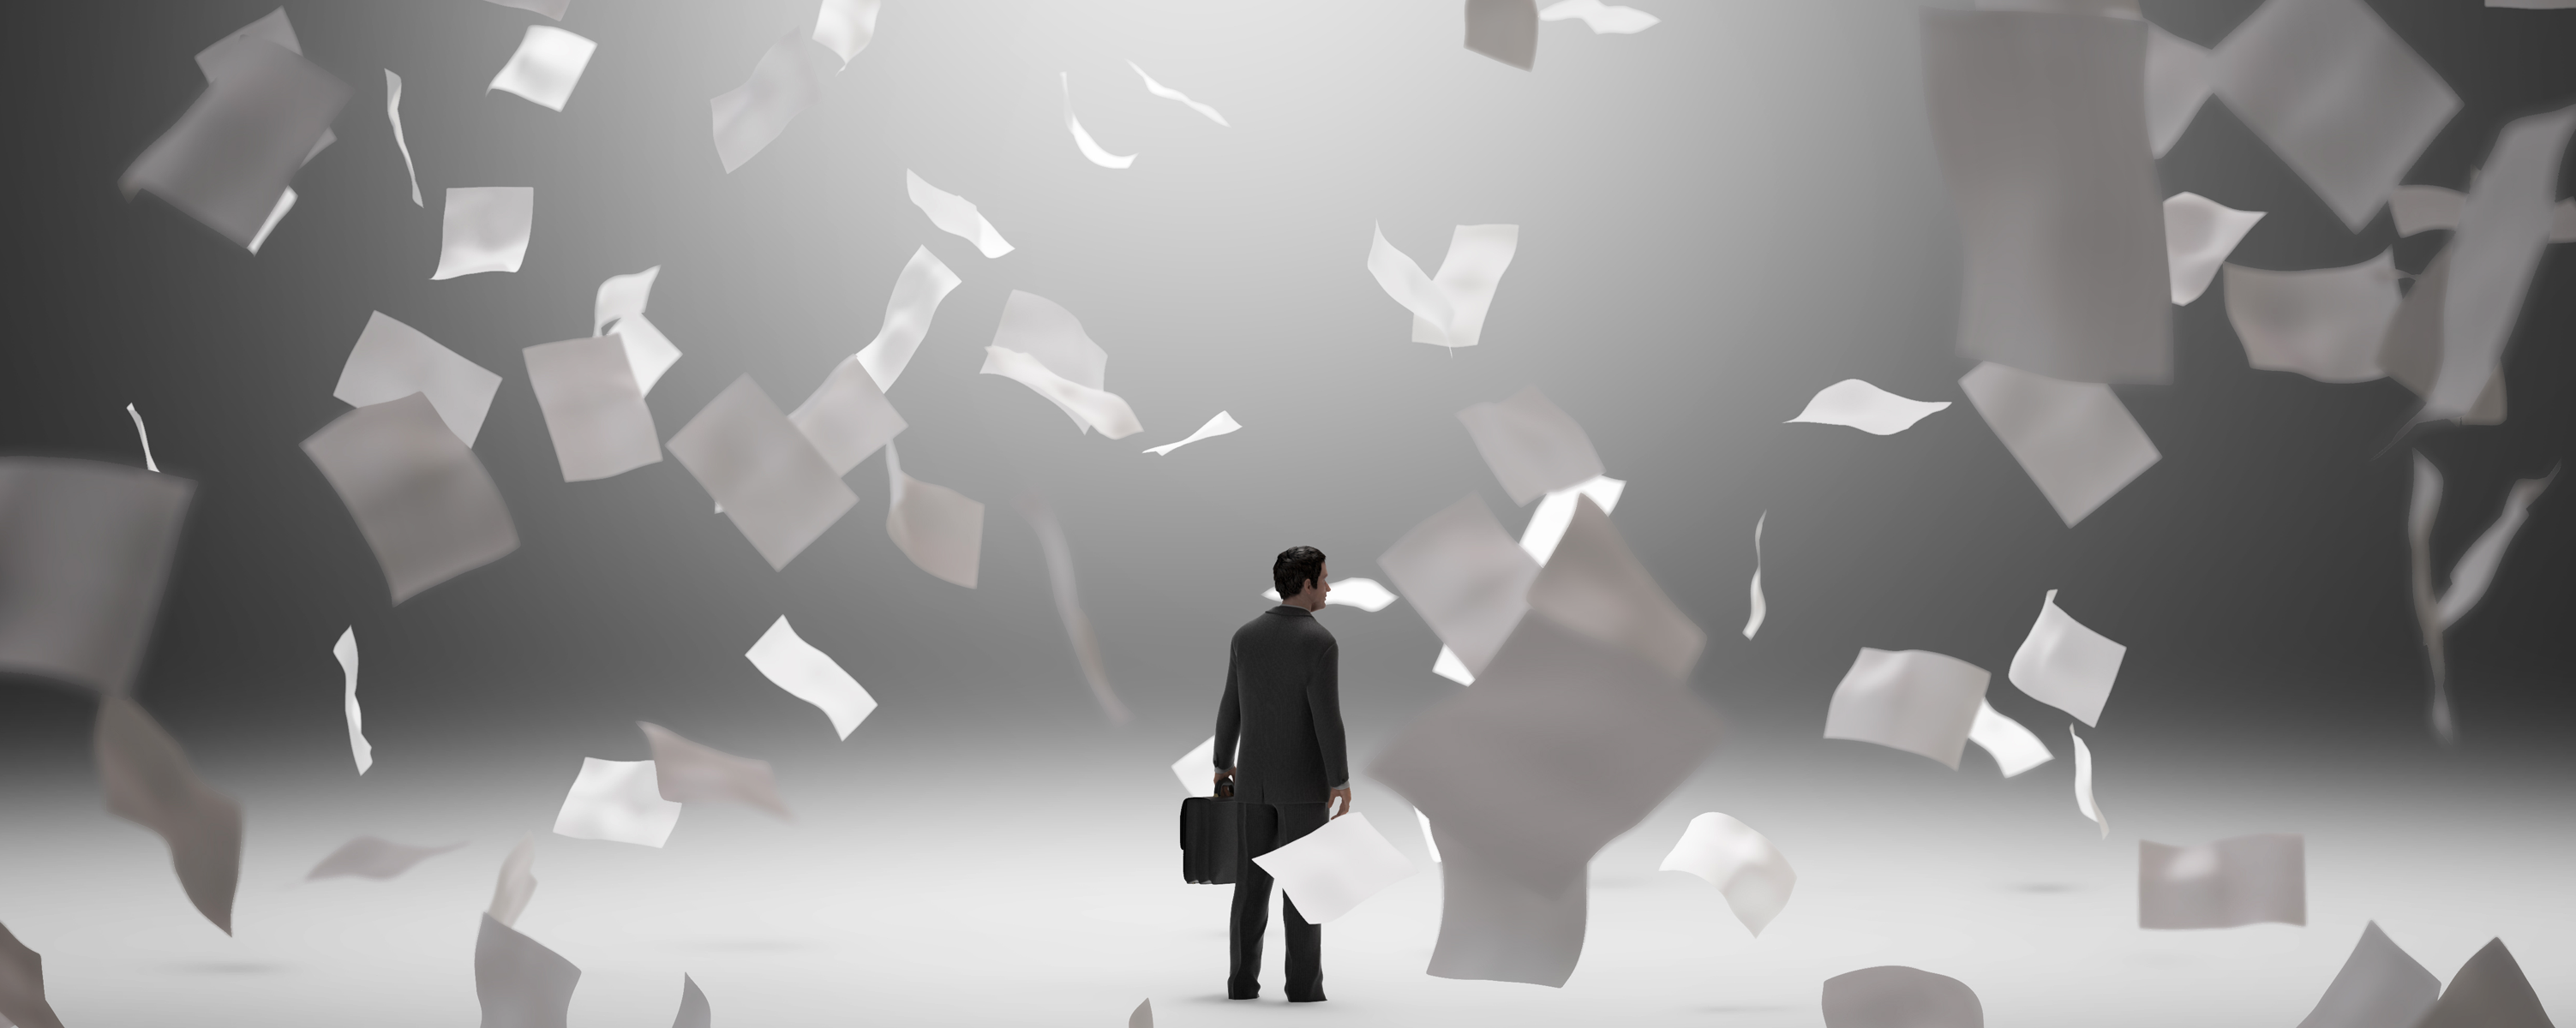 businessman carrying briefcase in empty room surrounded by falling paper- Open Access BPO